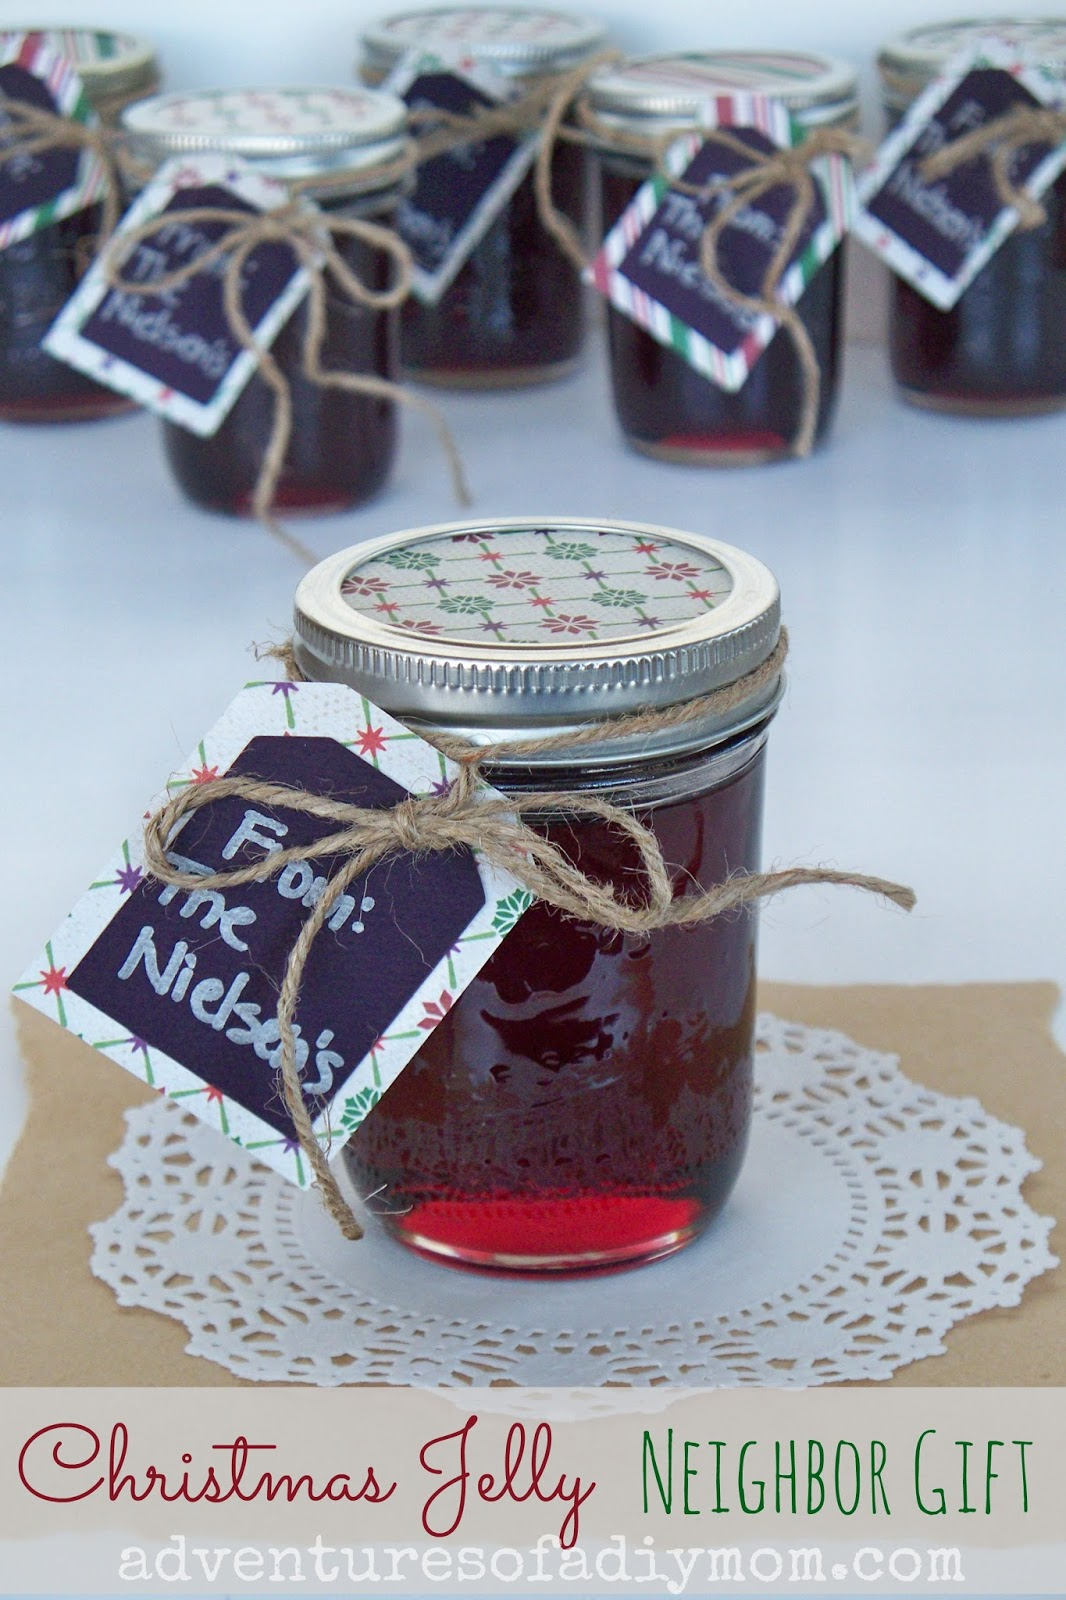 Christmas Jelly Neighbor Gift